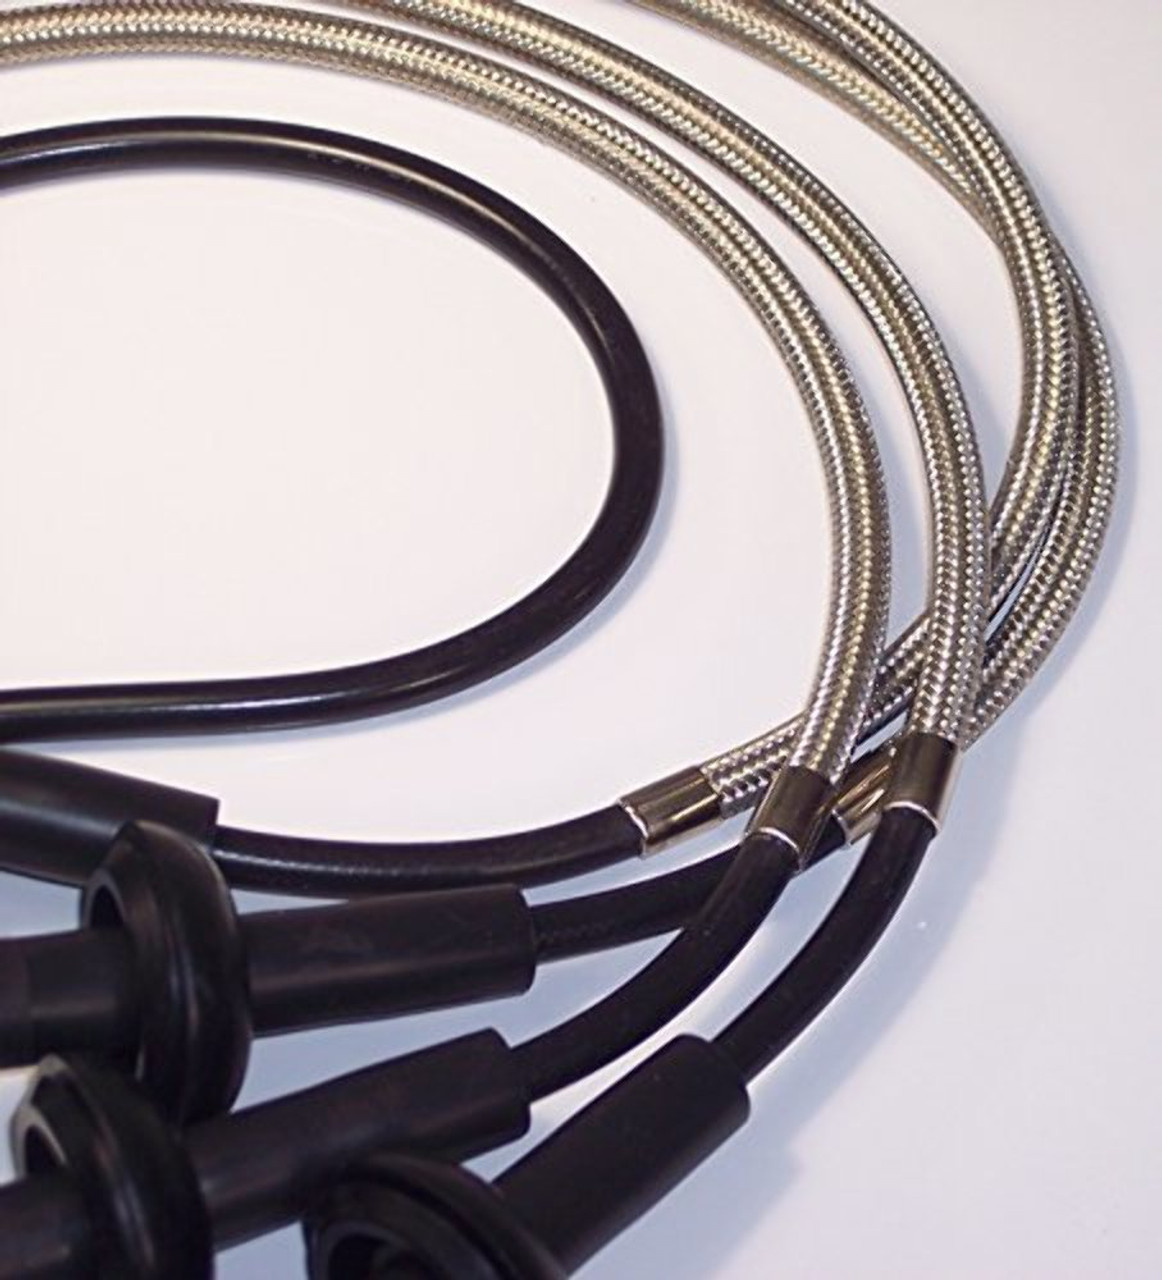 8mm Braided SST Shielded Silicone Wires Tin Copper Jaket, VW Dune Buggy Baja Bug